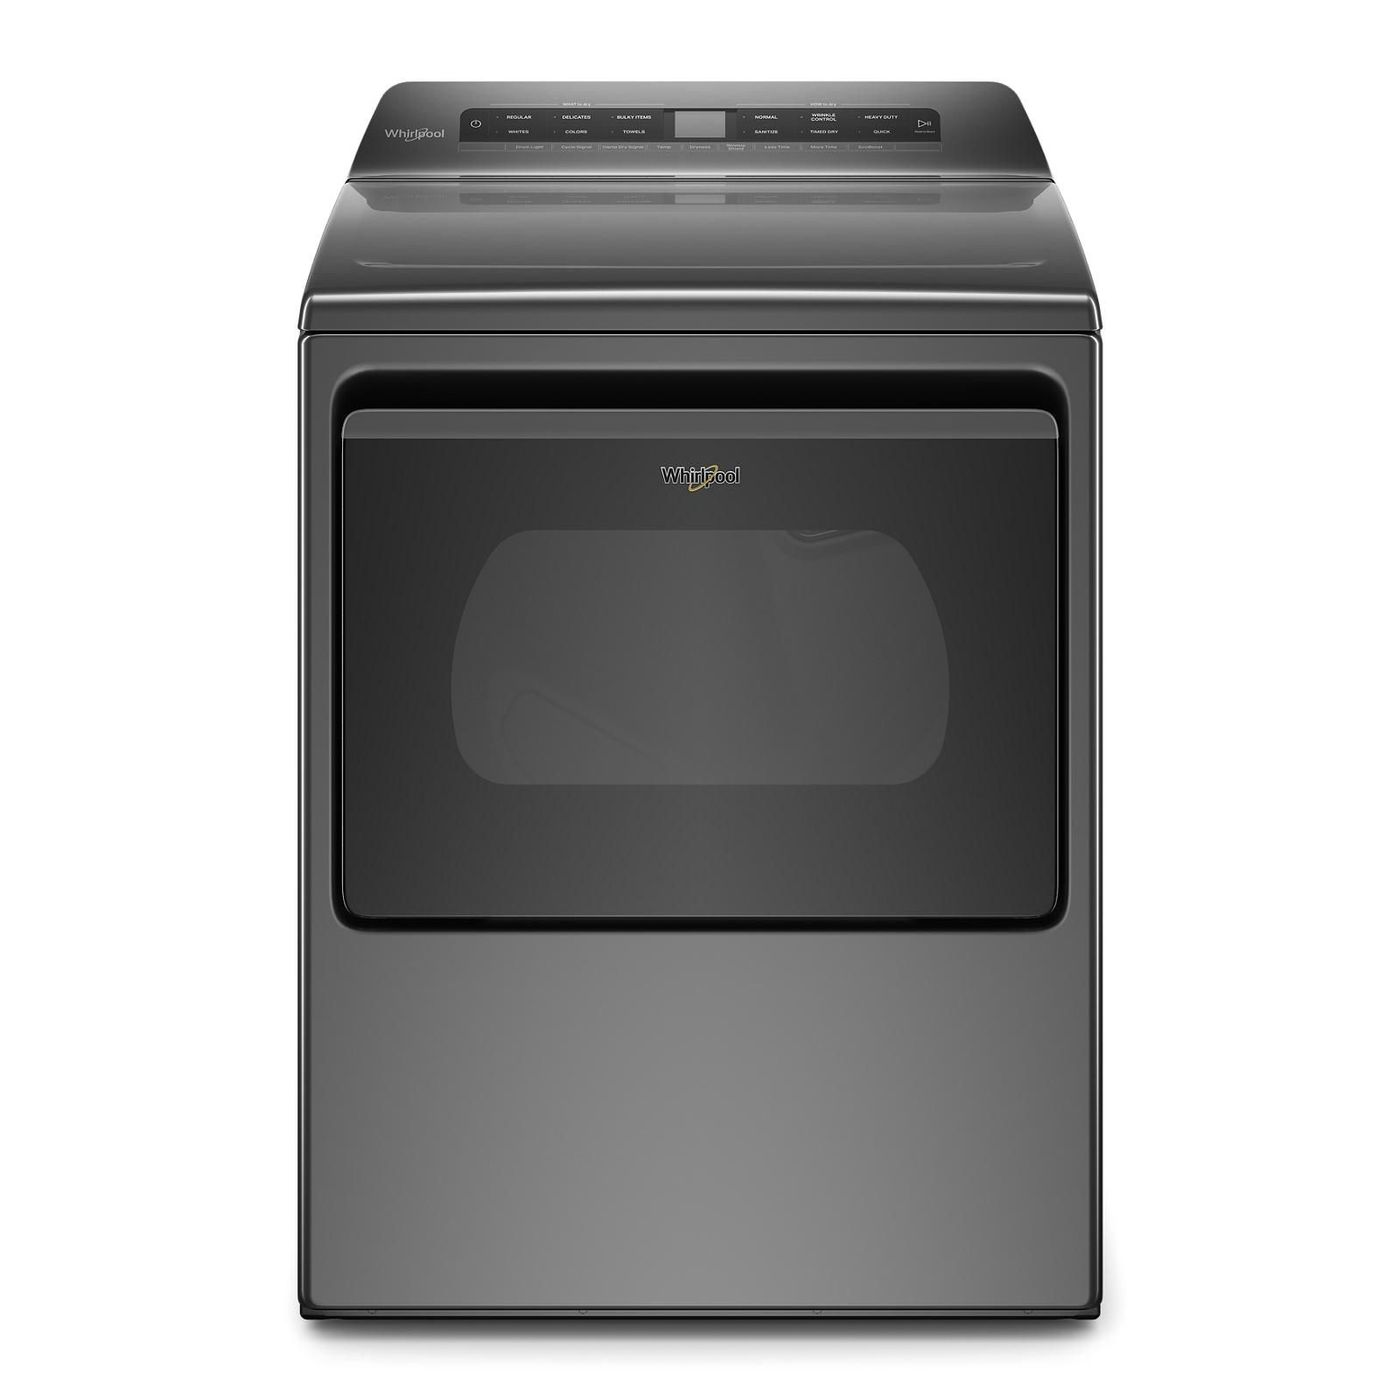 Whirlpool Dryer YWED5100HC in Grey color showcased by Corbeil Electro Store